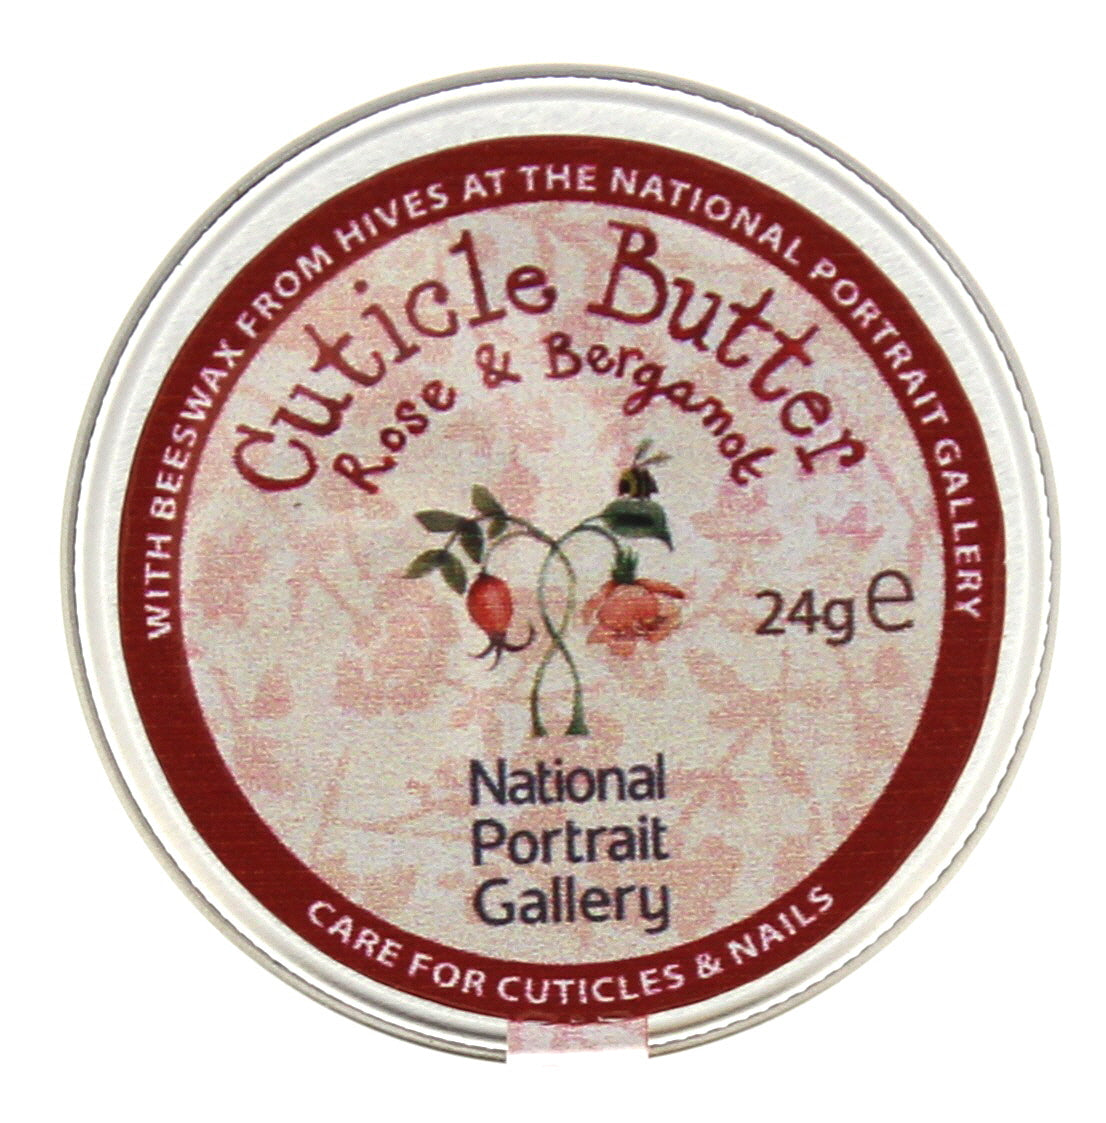 Rose & Bergamot Cuticle Butter